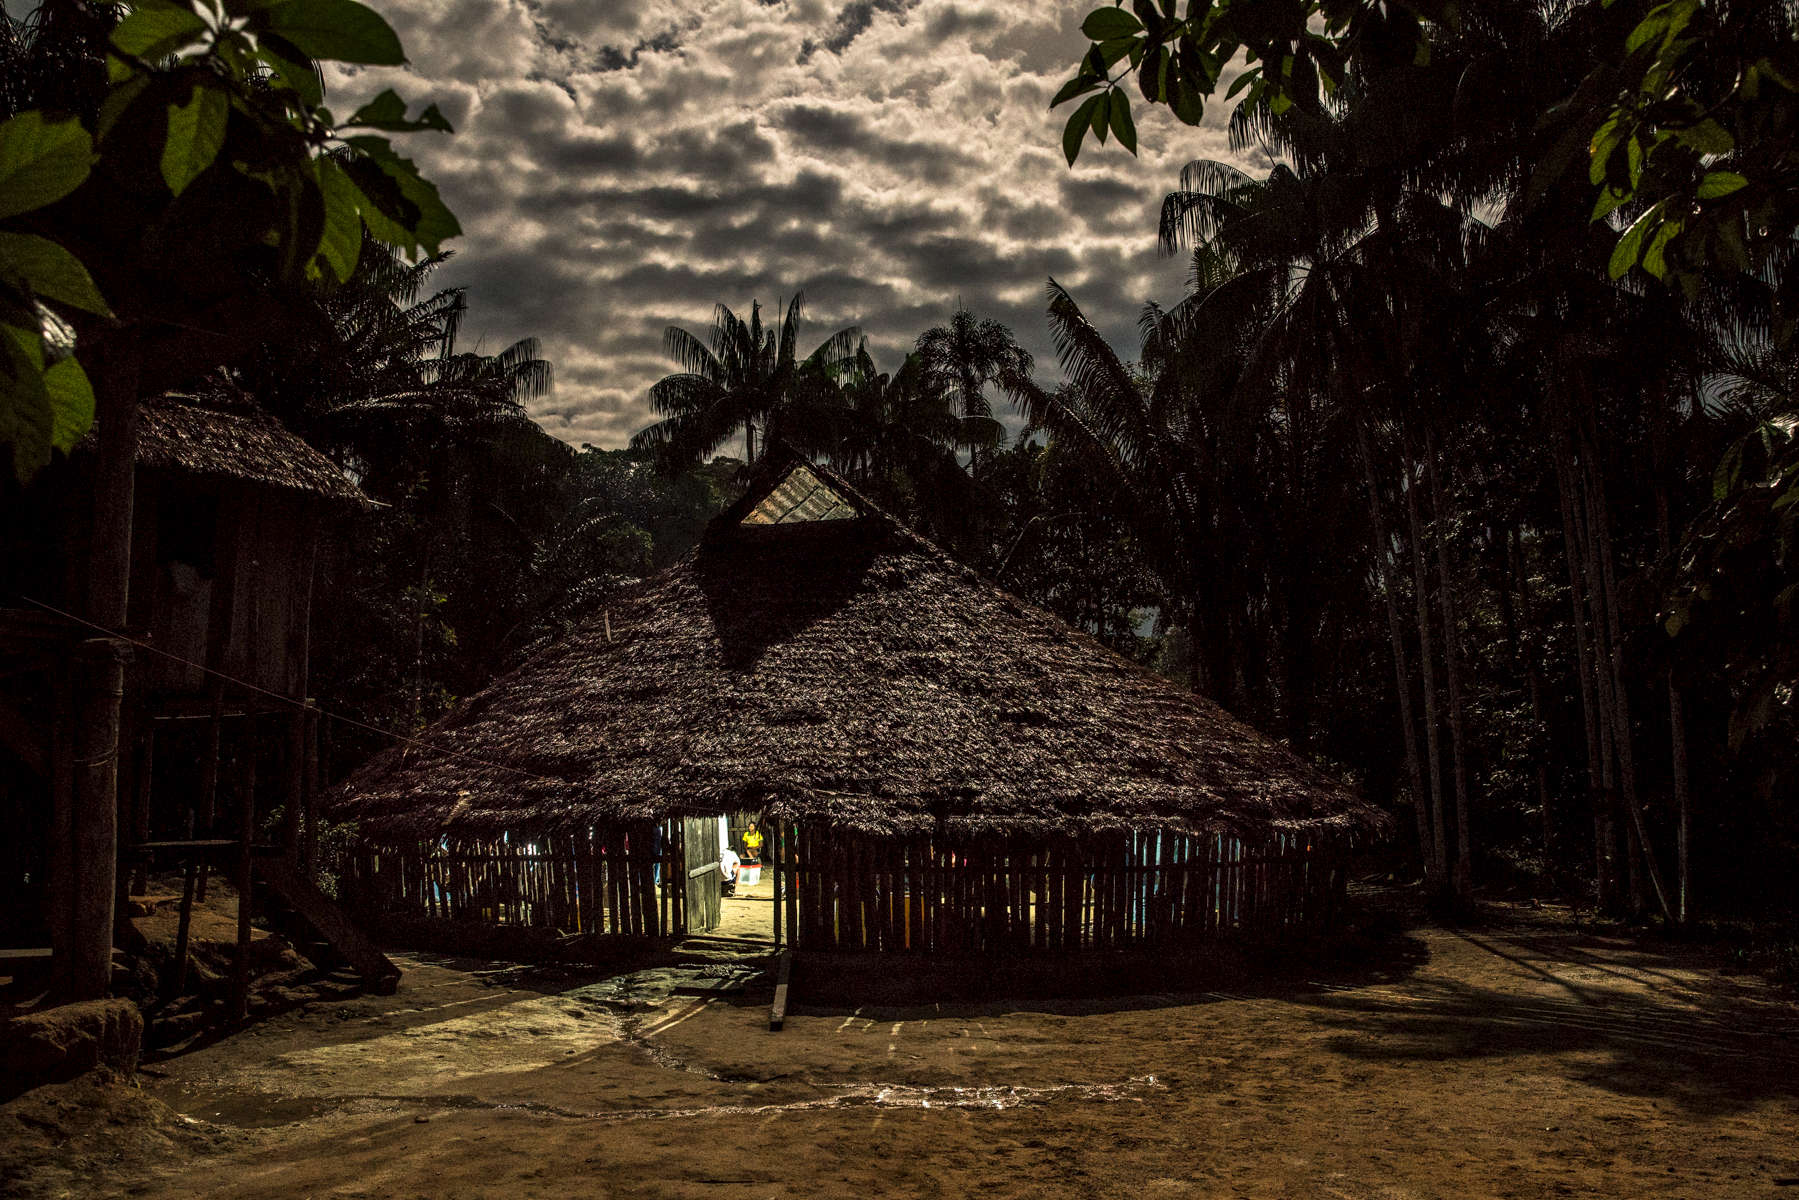 December 3, 2017. Borikada, Resguardo Curare Los Ingleses, Amazon. A view of the Maloka of the indigenous community of Barikada where members of the communities of the Resguardo Curare Los Ingleses gather to discuss matters of their community. Photo Credit: Juan Arredondo for Scientific American.